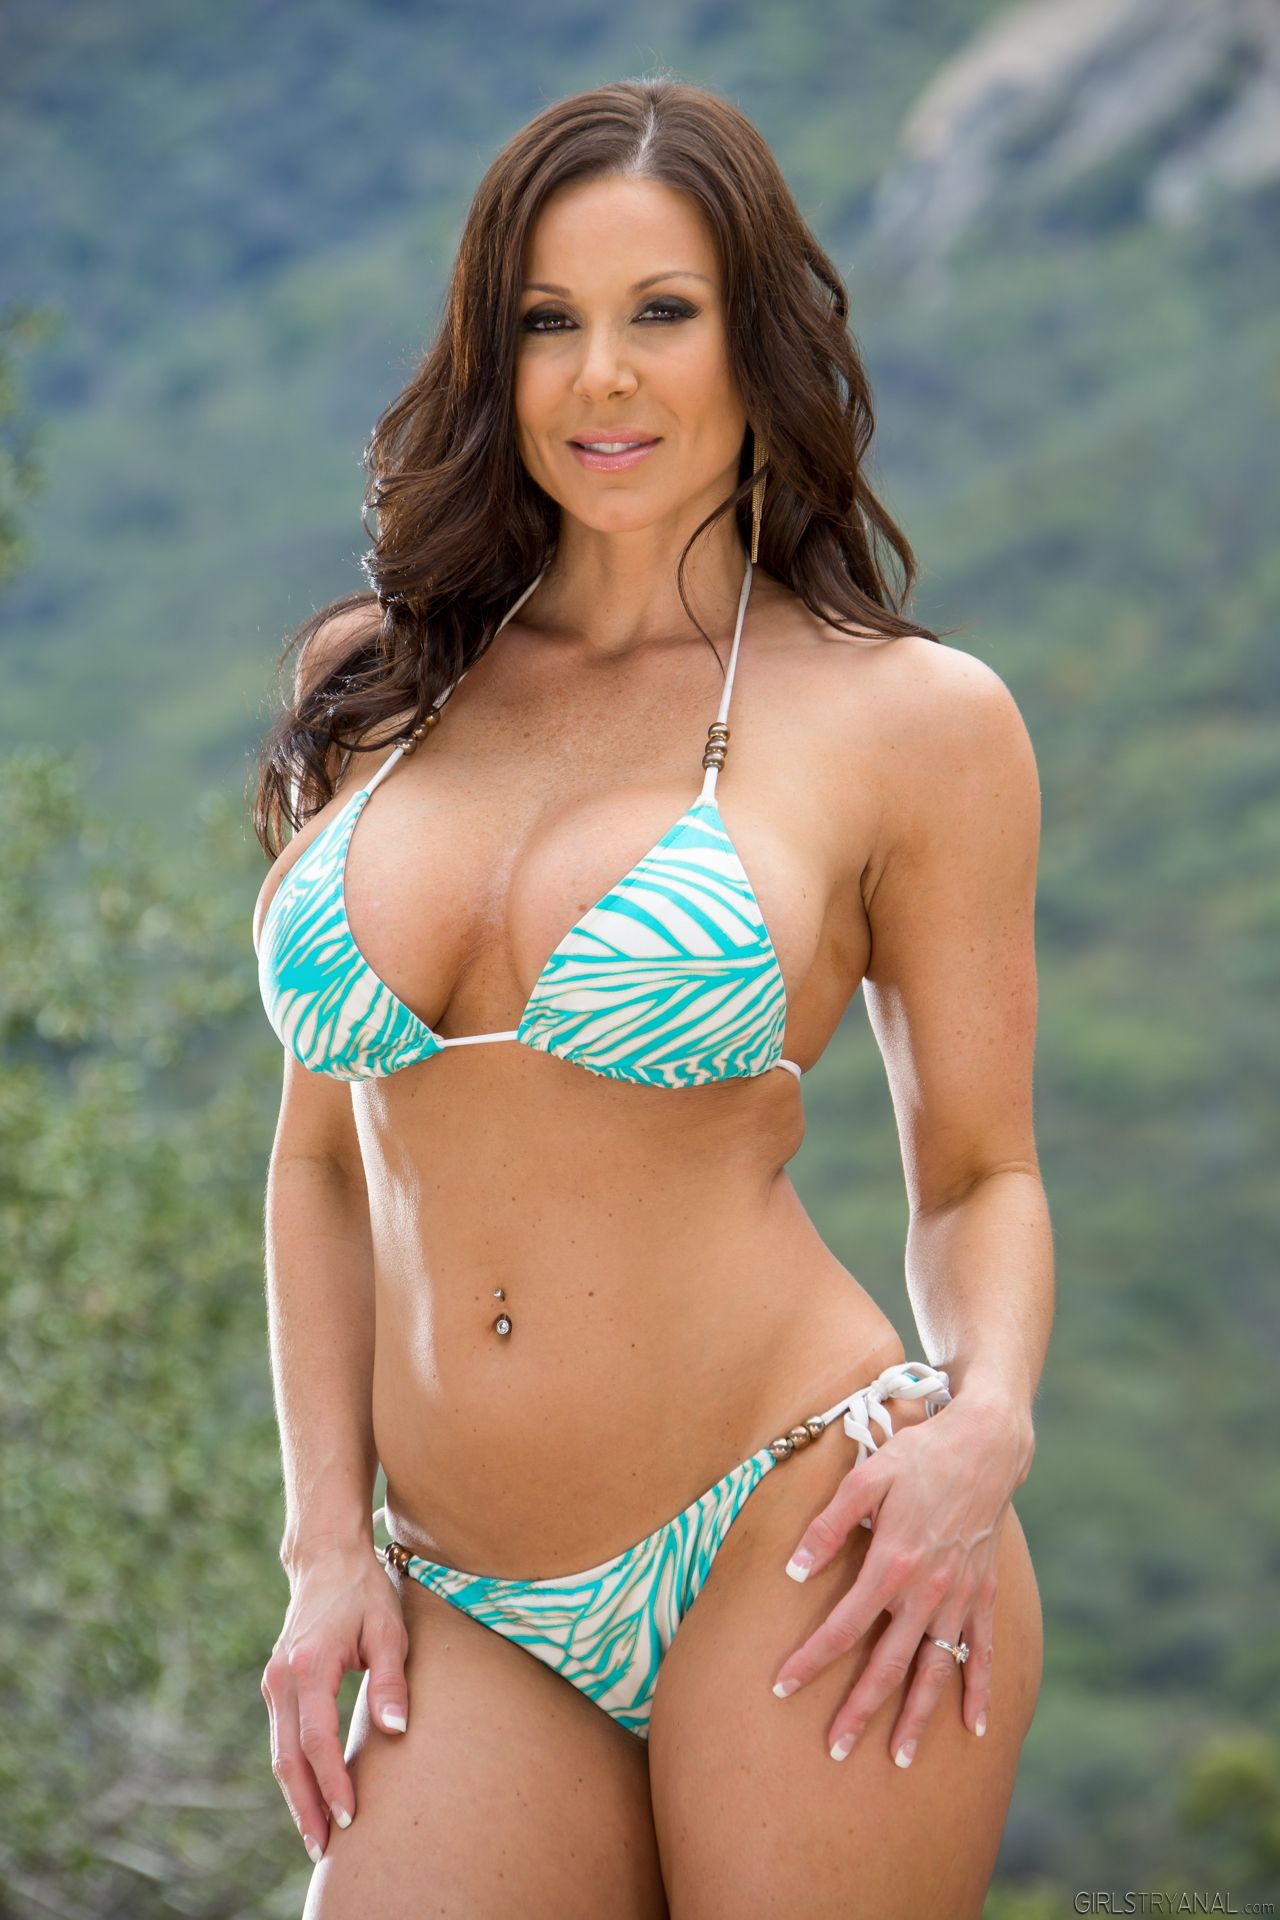 kendra lust | x kendra lust | pinterest | bikini beach, swimsuits